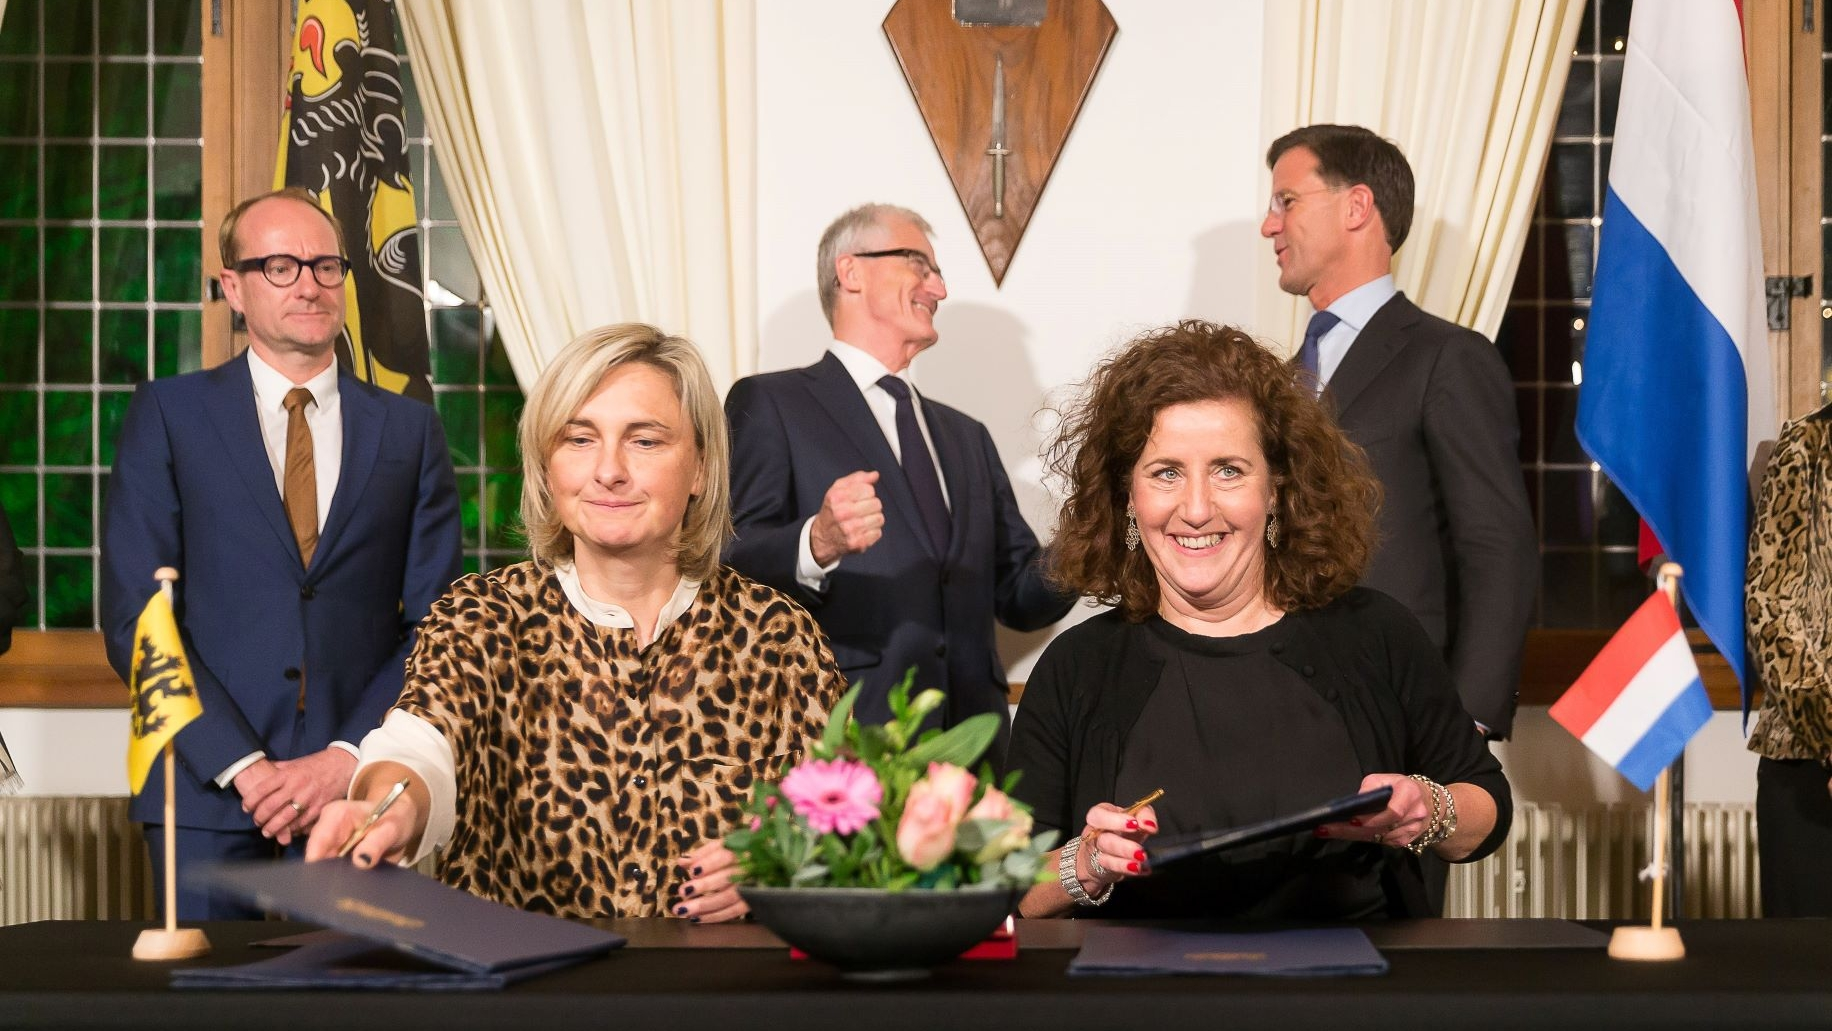 Ministers of Education Crevits and  Van Engelshoven